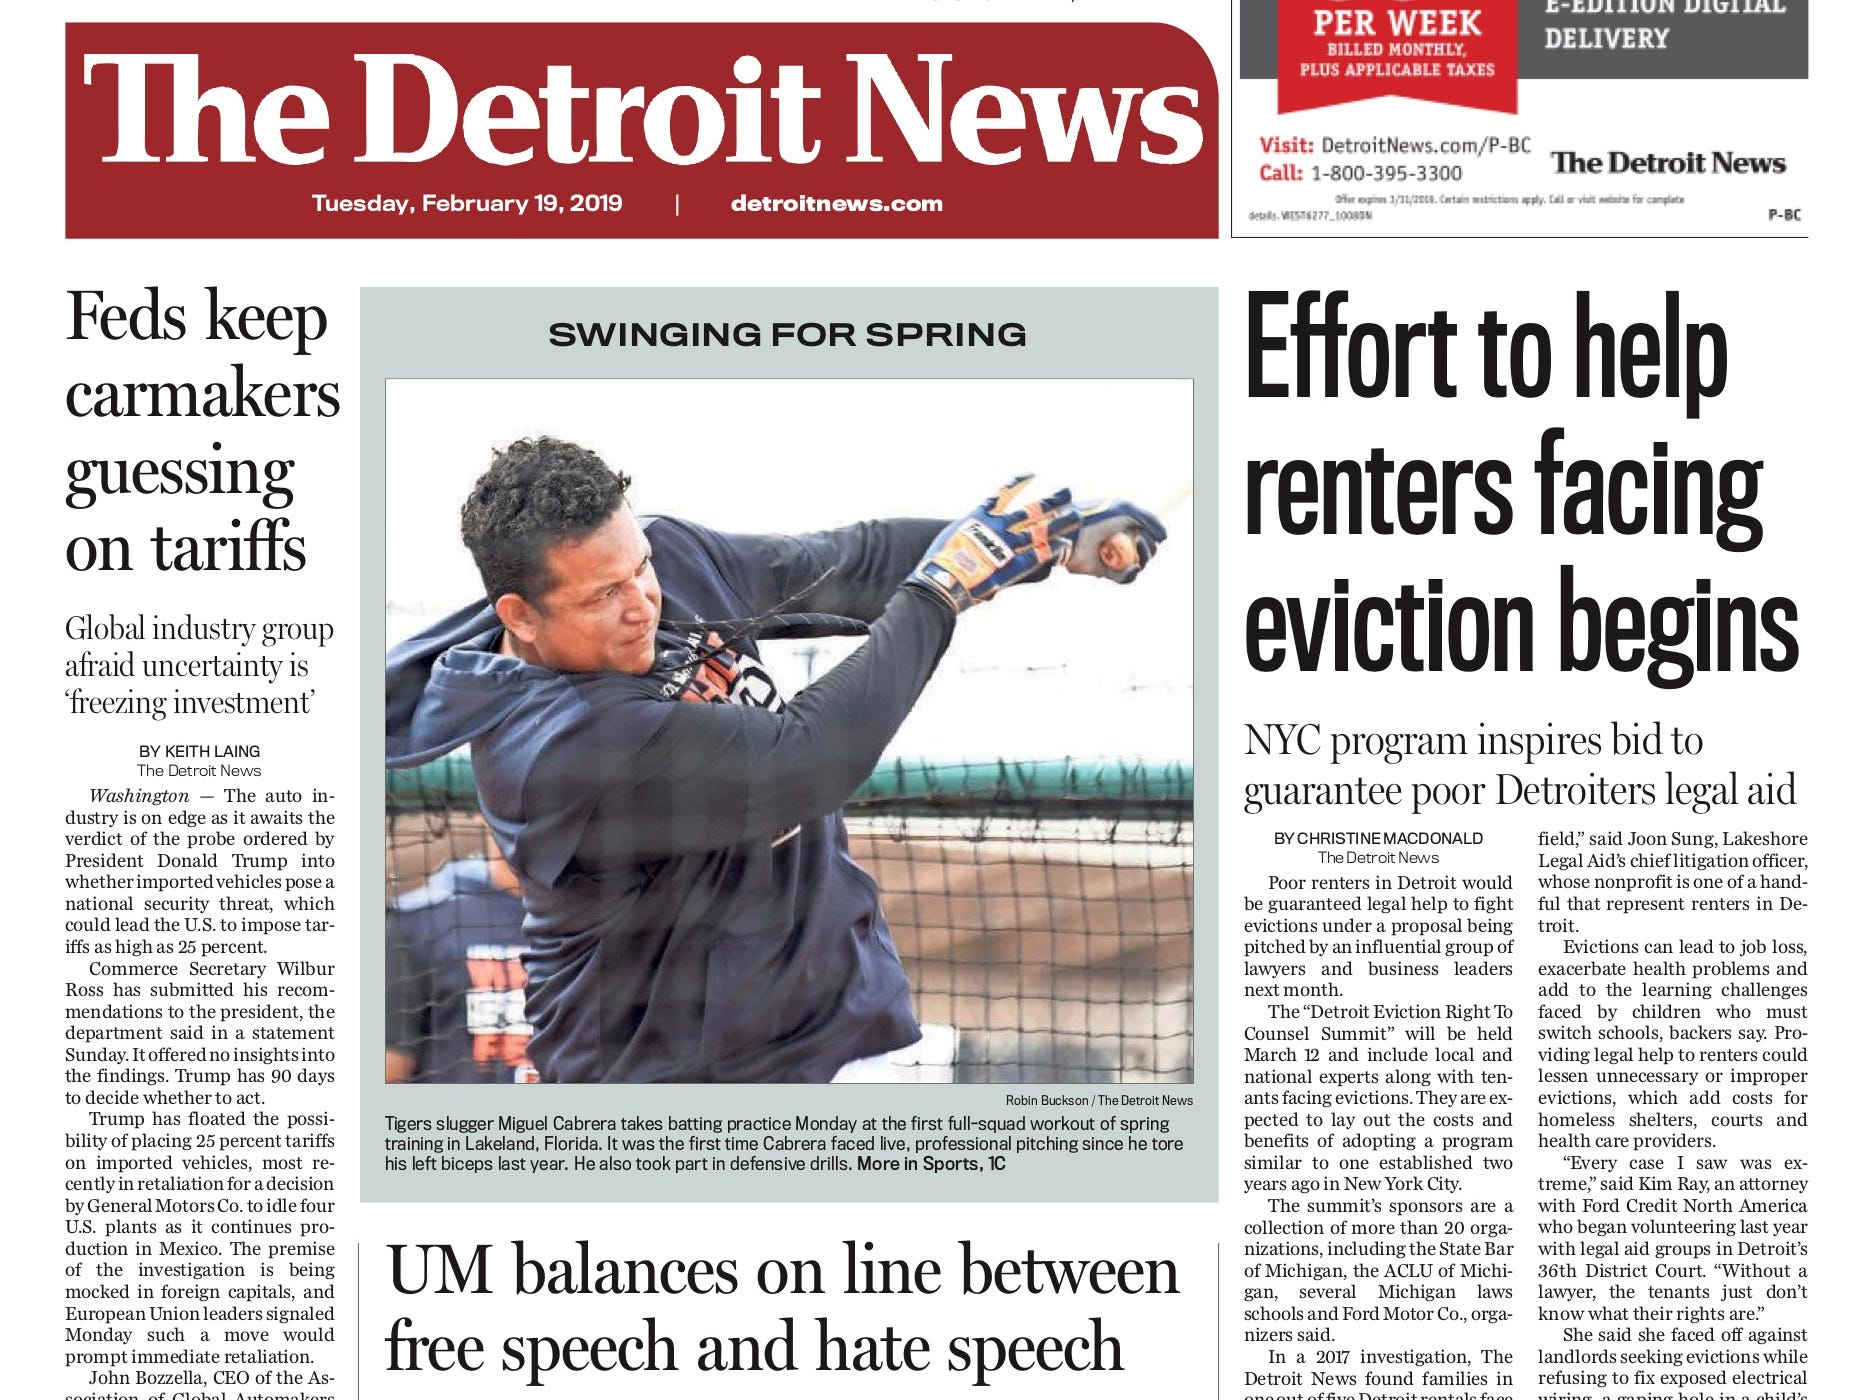 Page one of the Detroit News on February 19, 2019.